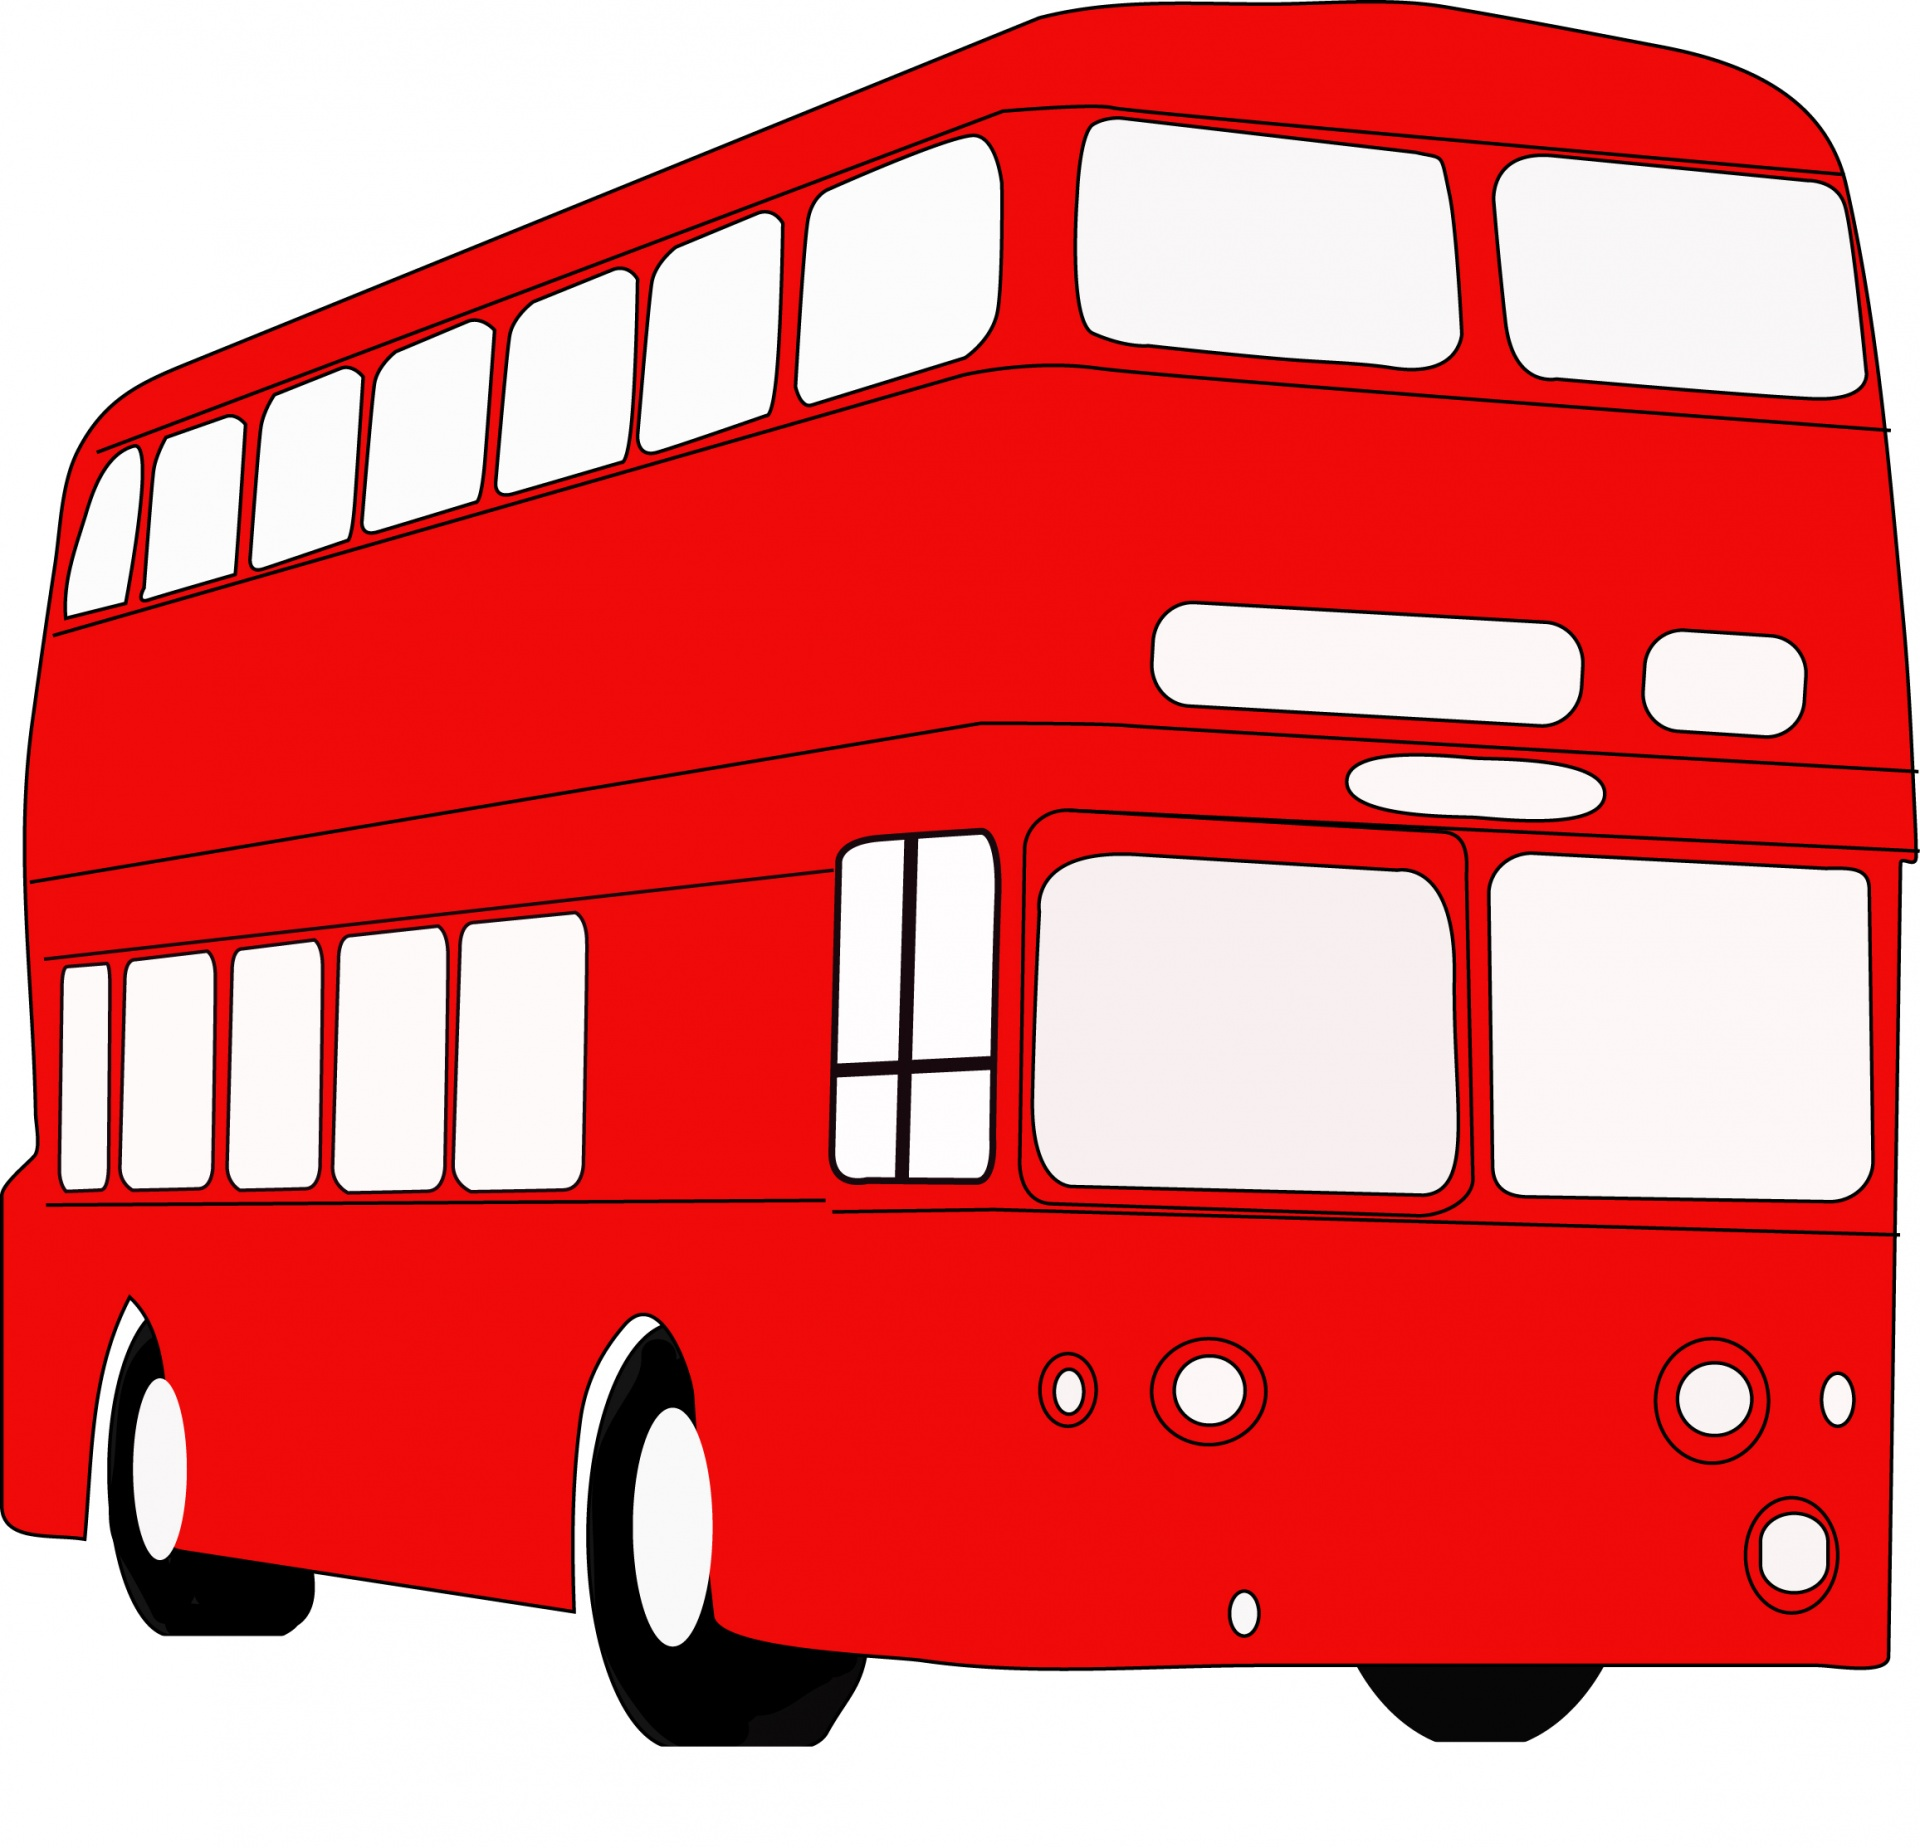 1920x1848 Red Bus Free Stock Photo